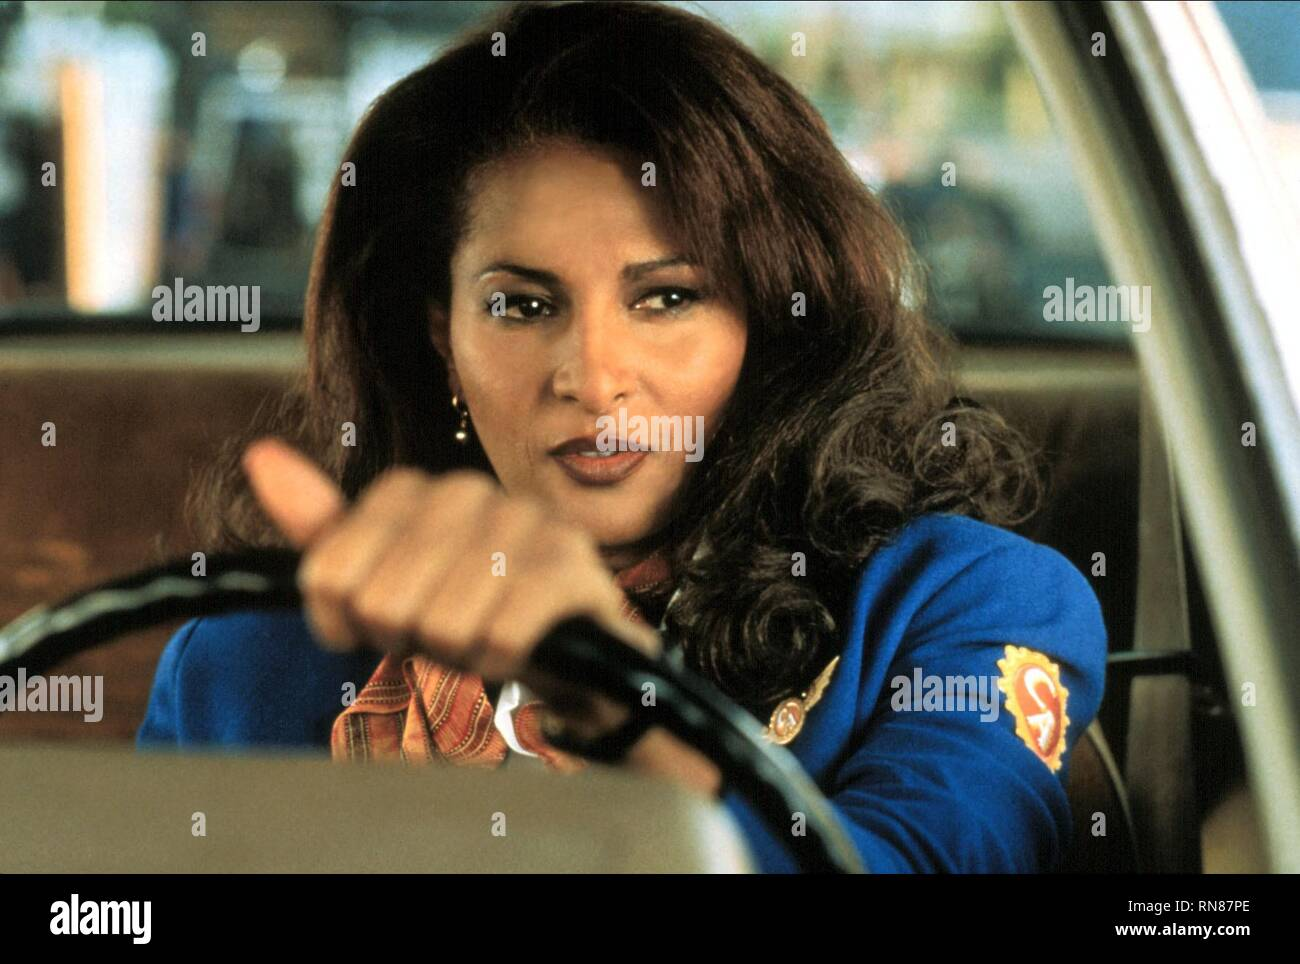 JACKIE BROWN, PAM GRIER, 1997 - Stock Image